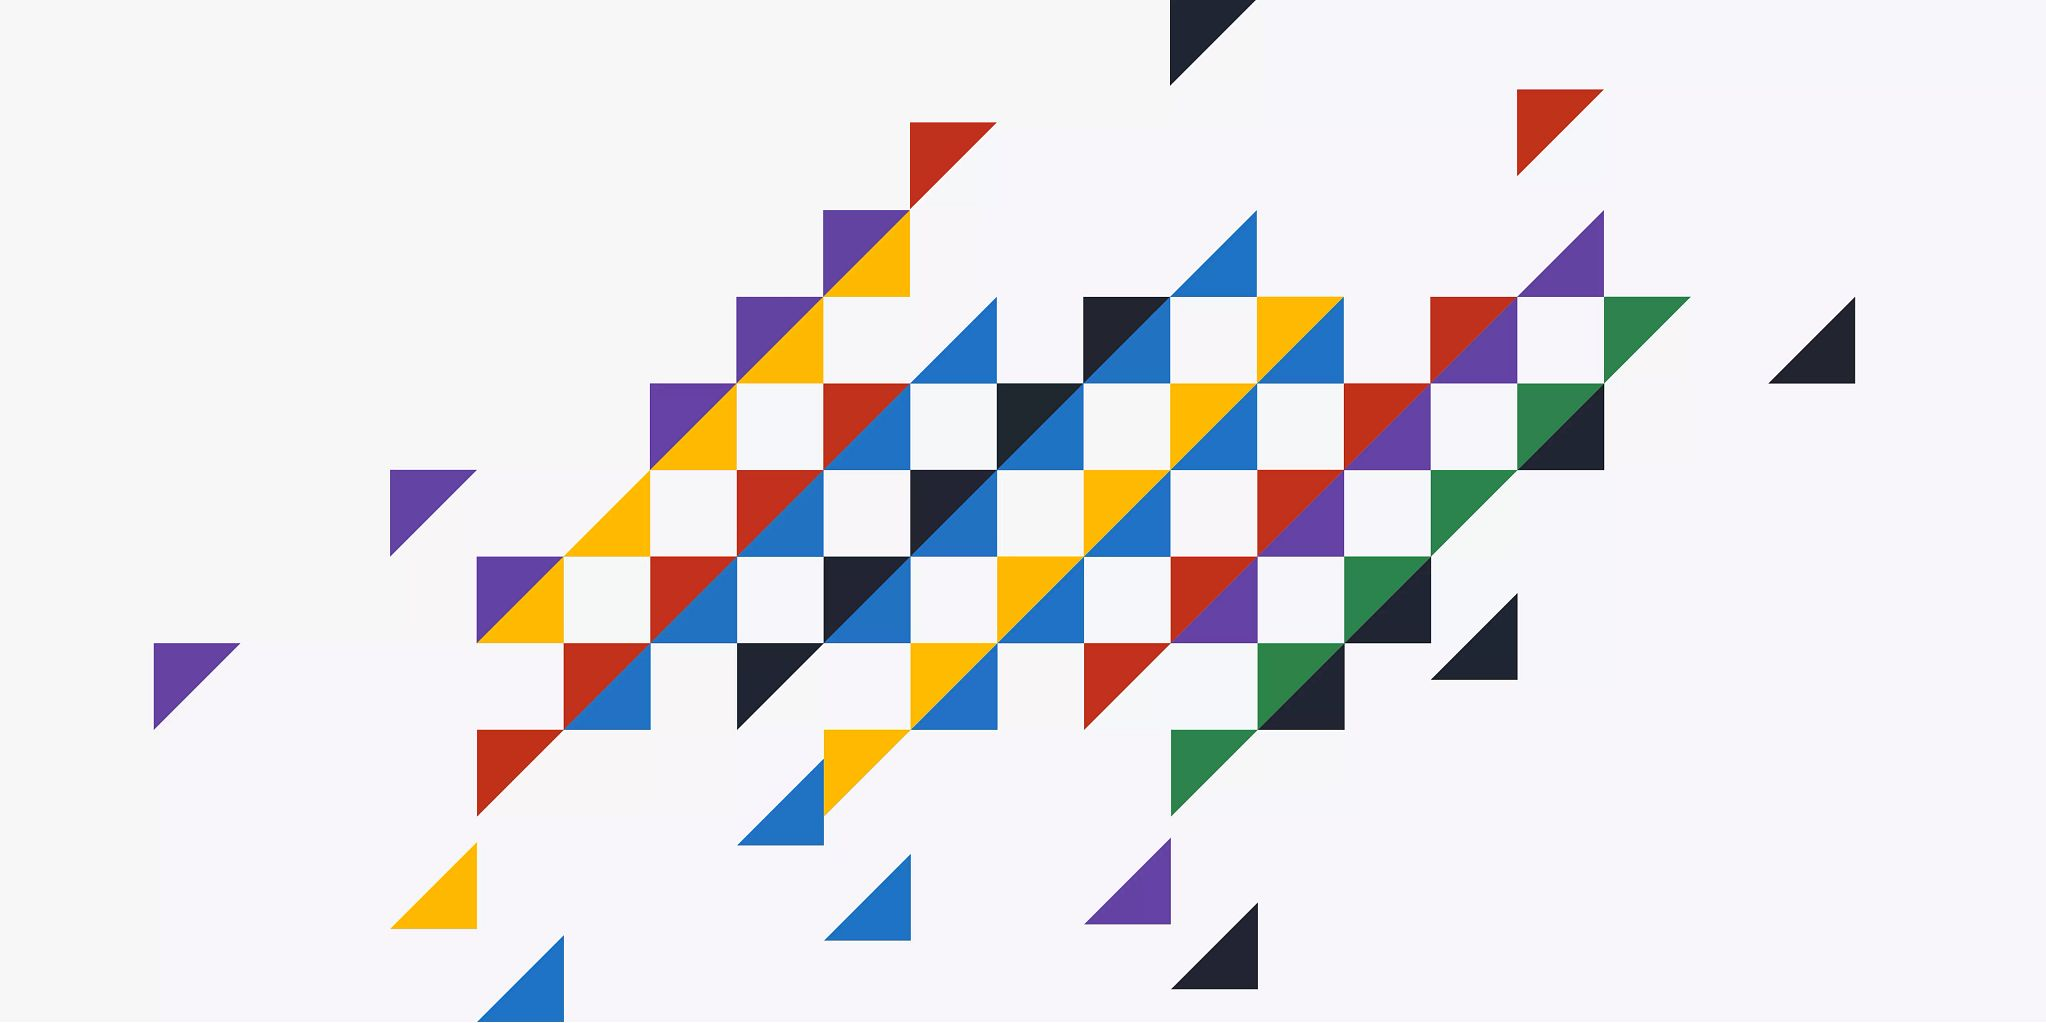 Multiple solid-colored triangles, some single, some placed end to end to form squares. All are congregated in the center of the graphic.